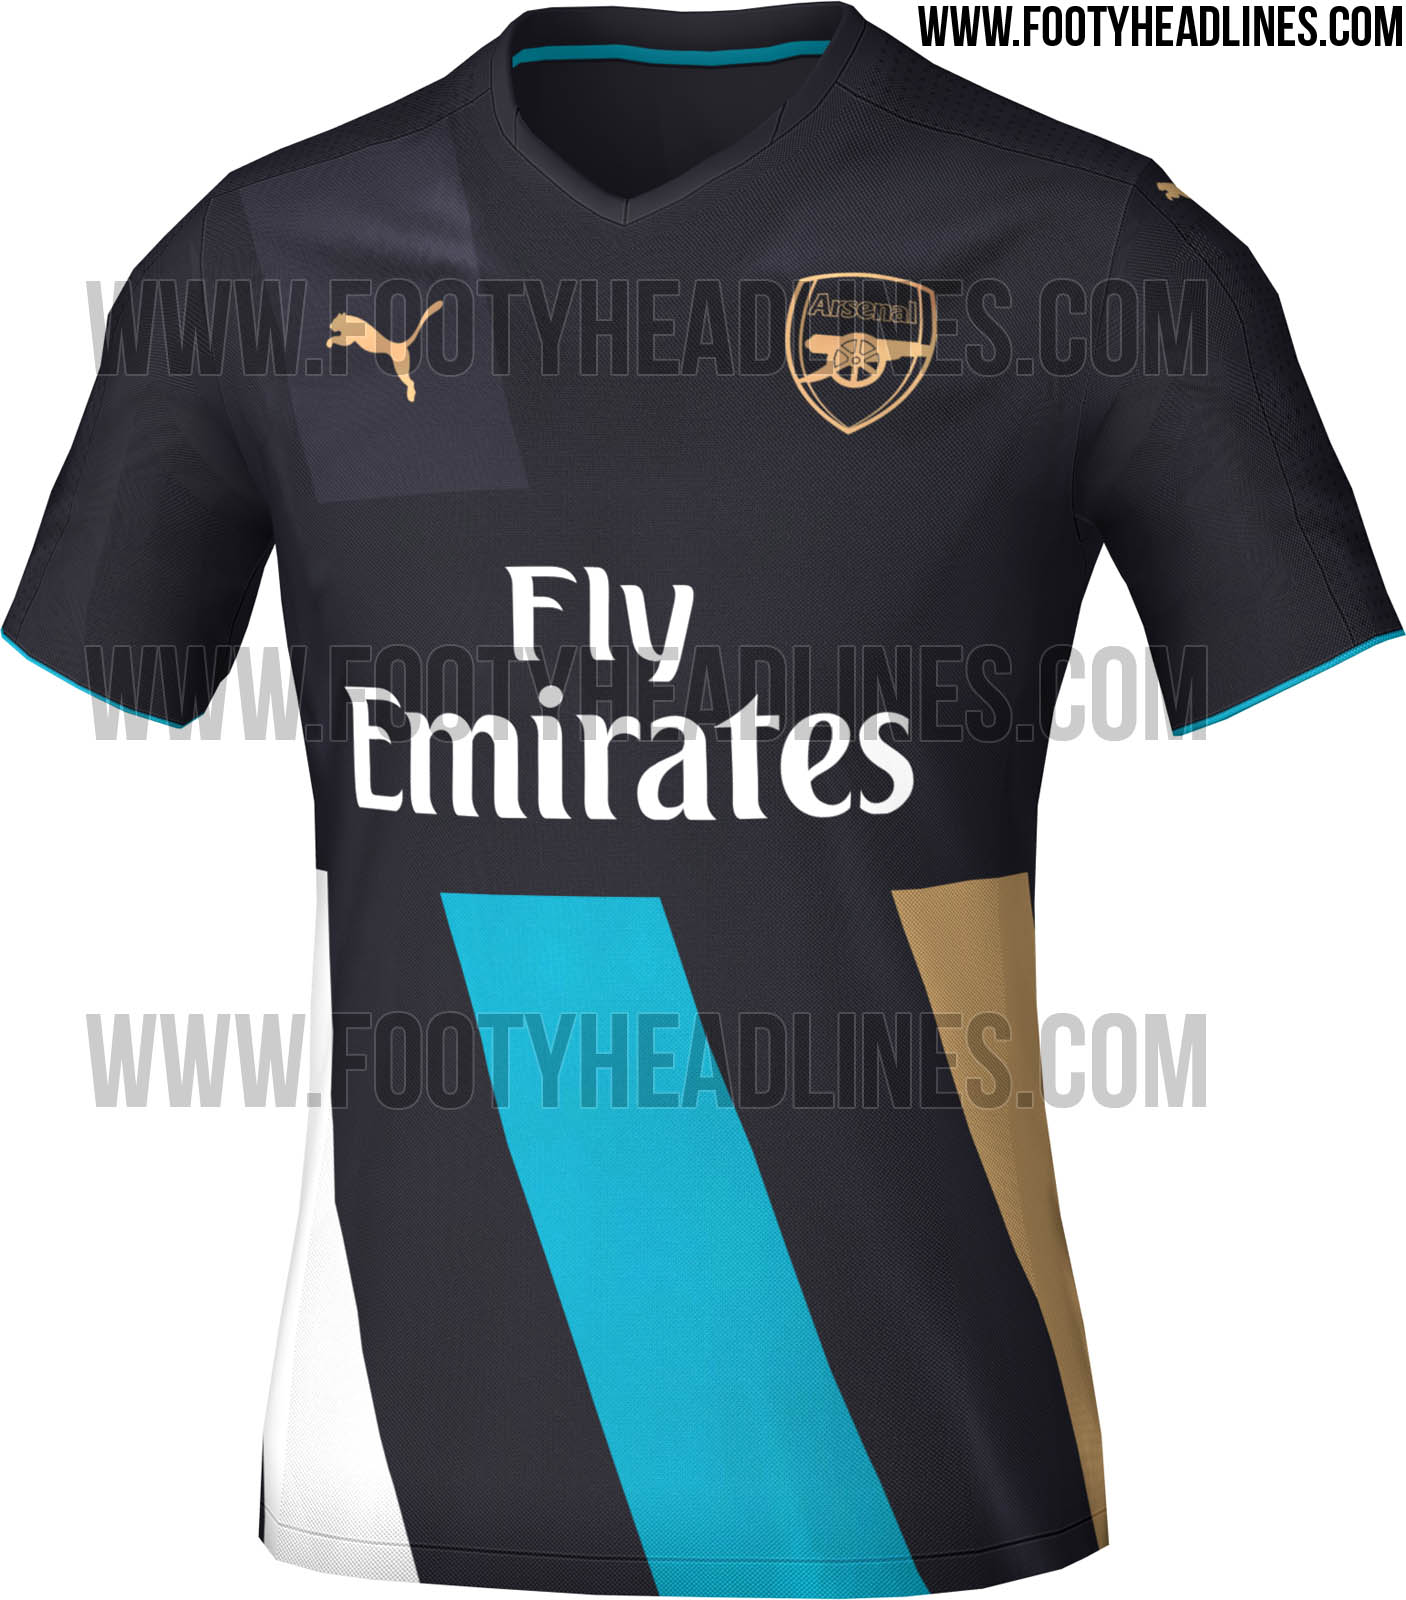 nike air max rose et gris - 2015-16 Premier League Kits Overview �C All 15-16 Premier League ...